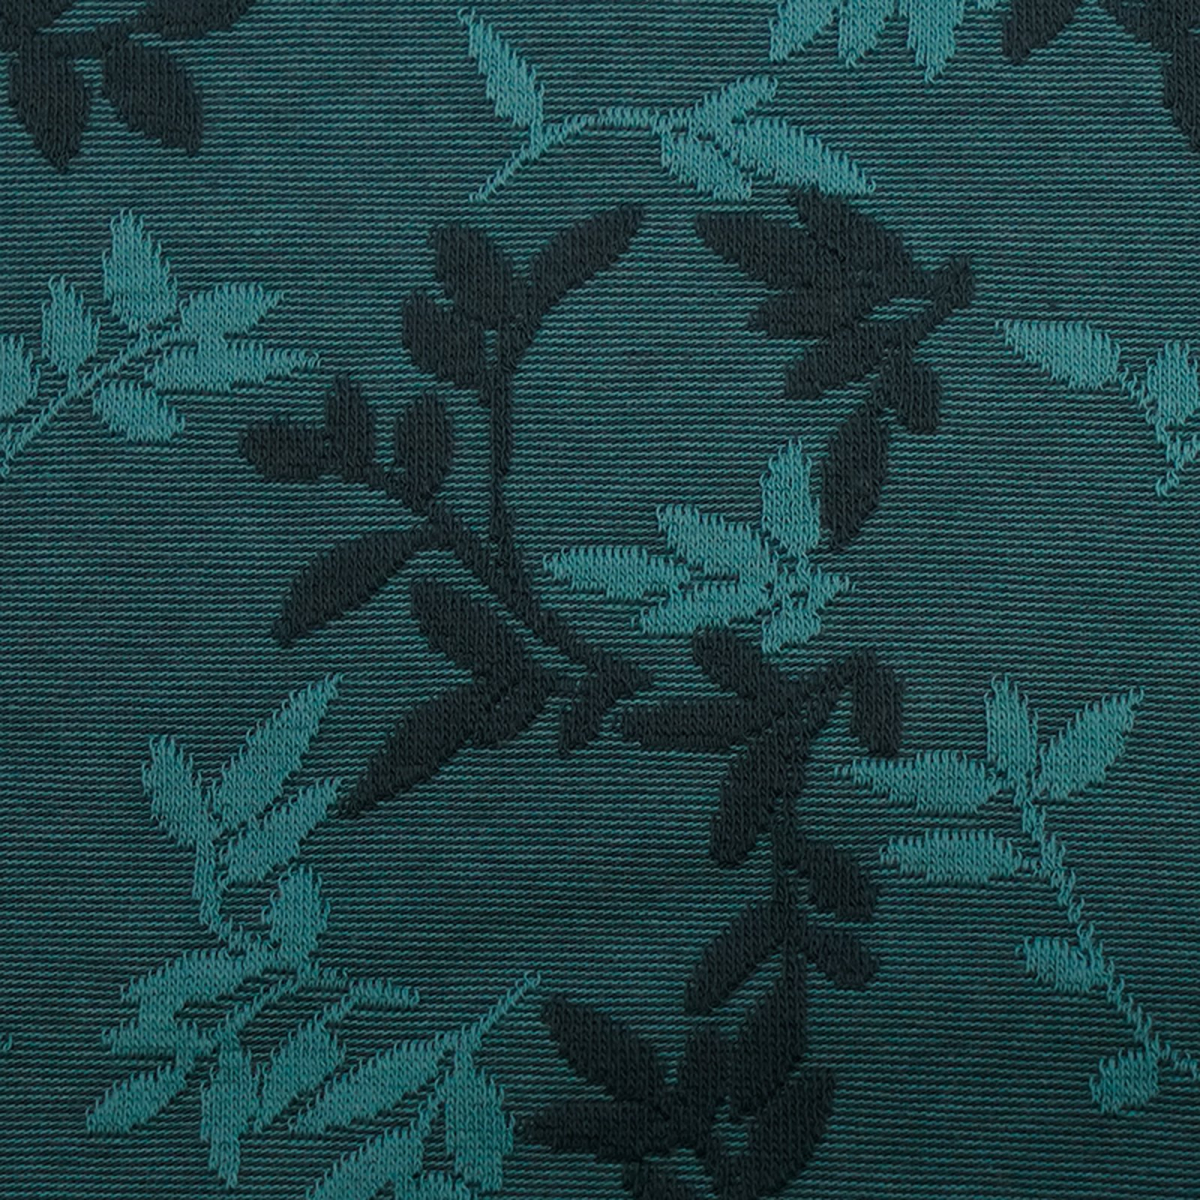 Relief-Jacquard Shiny Leaves - smaragd